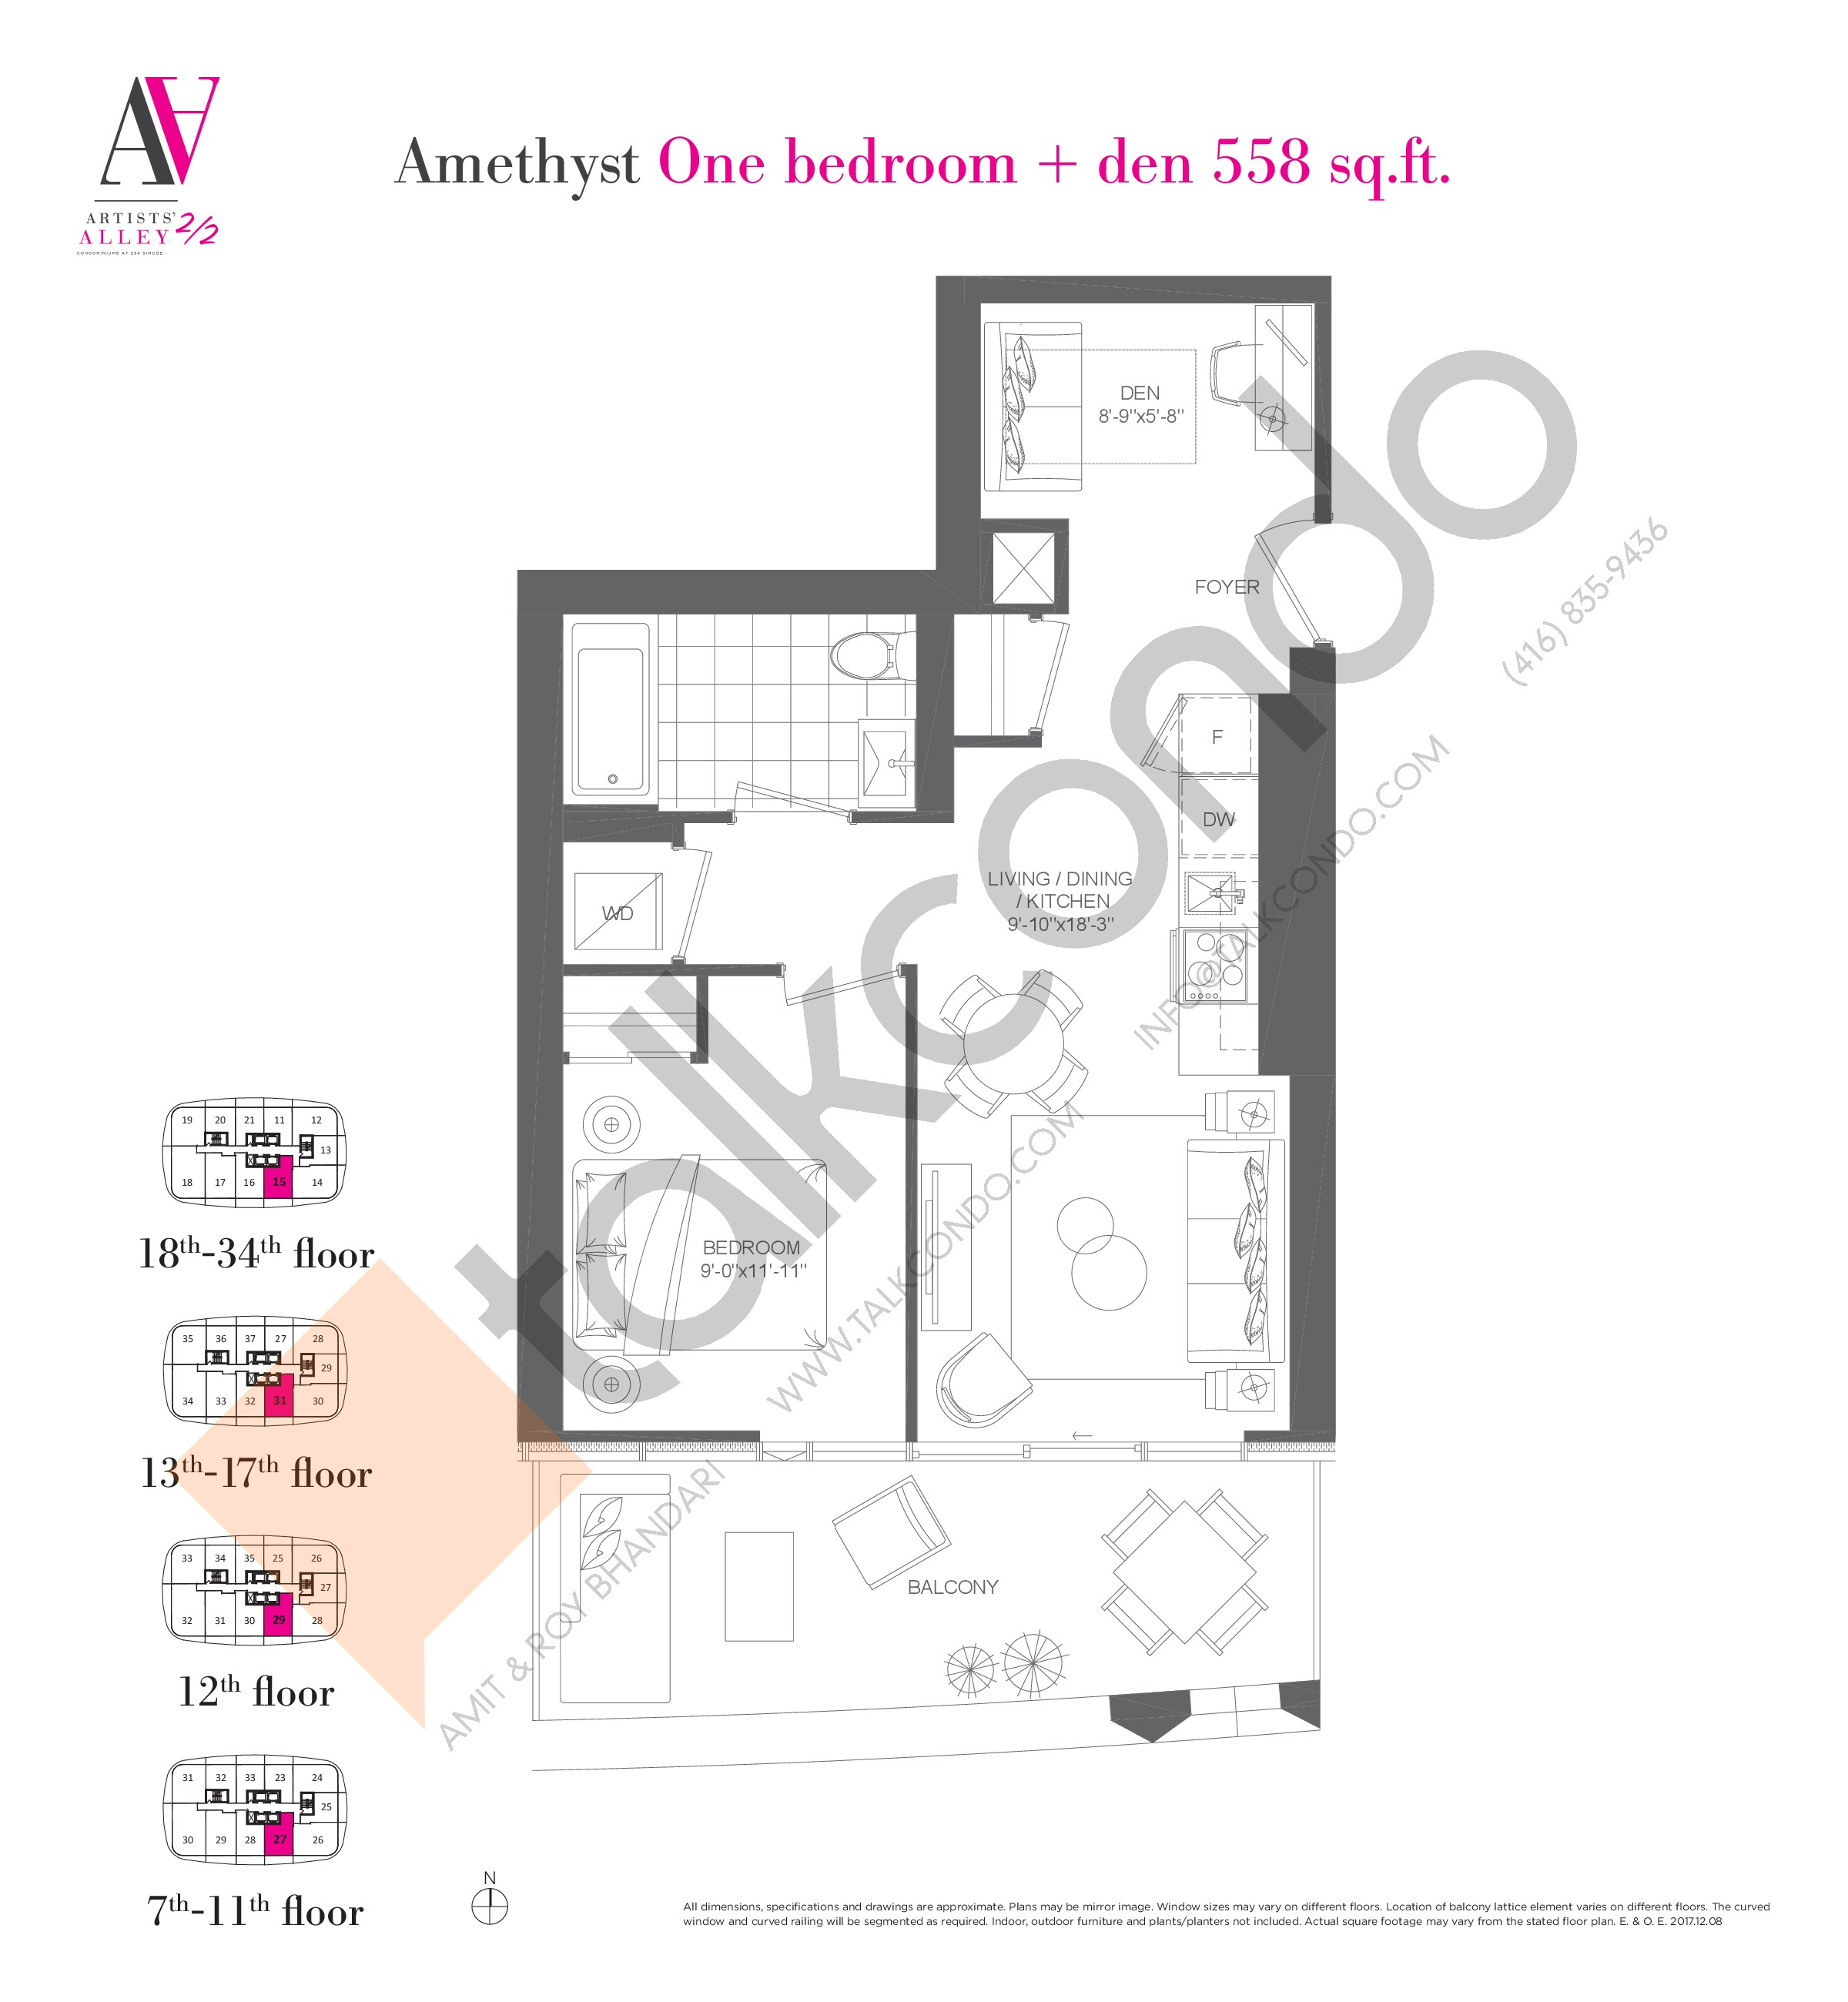 Amethyst Floor Plan at Artists' Alley 2 Condos - 558 sq.ft